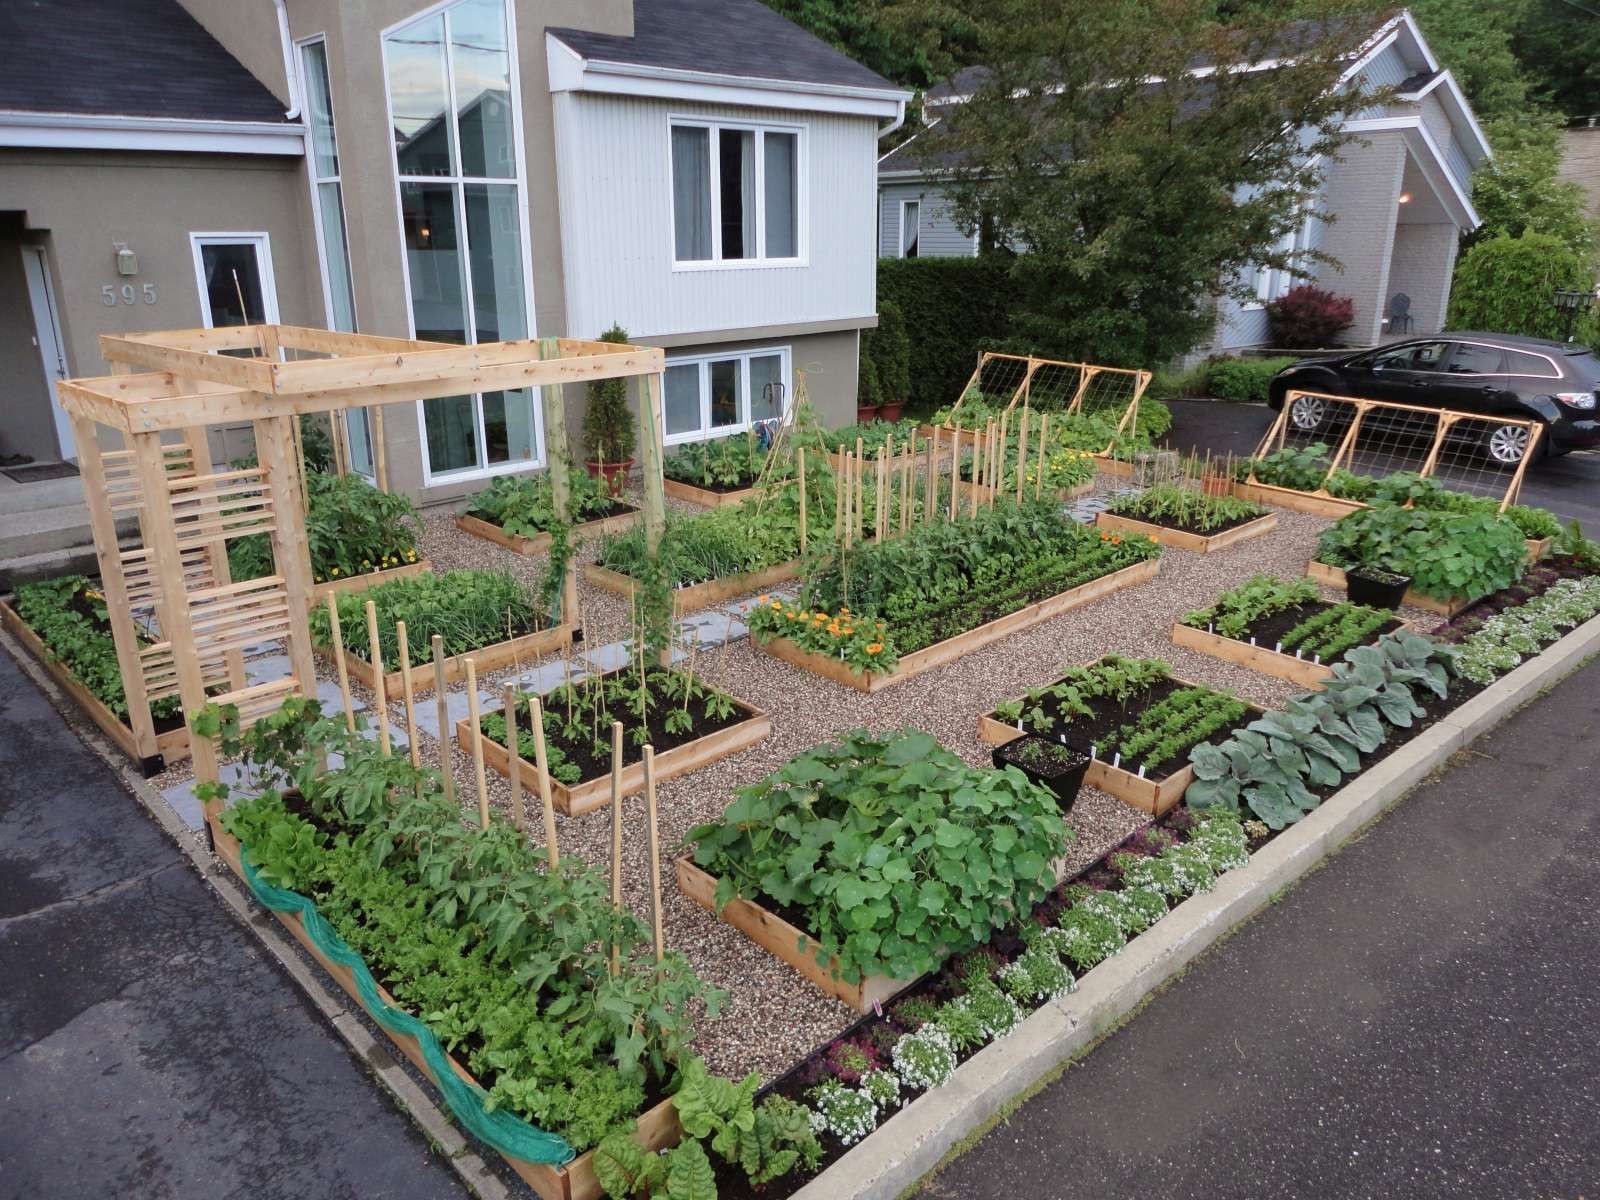 Container Vegetable Garden Ideas vegetable raised garden bed plans vegetable container gardening Find This Pin And More On Garden Backyard Garden Design Ideas With Front Yard Vegetable Garden